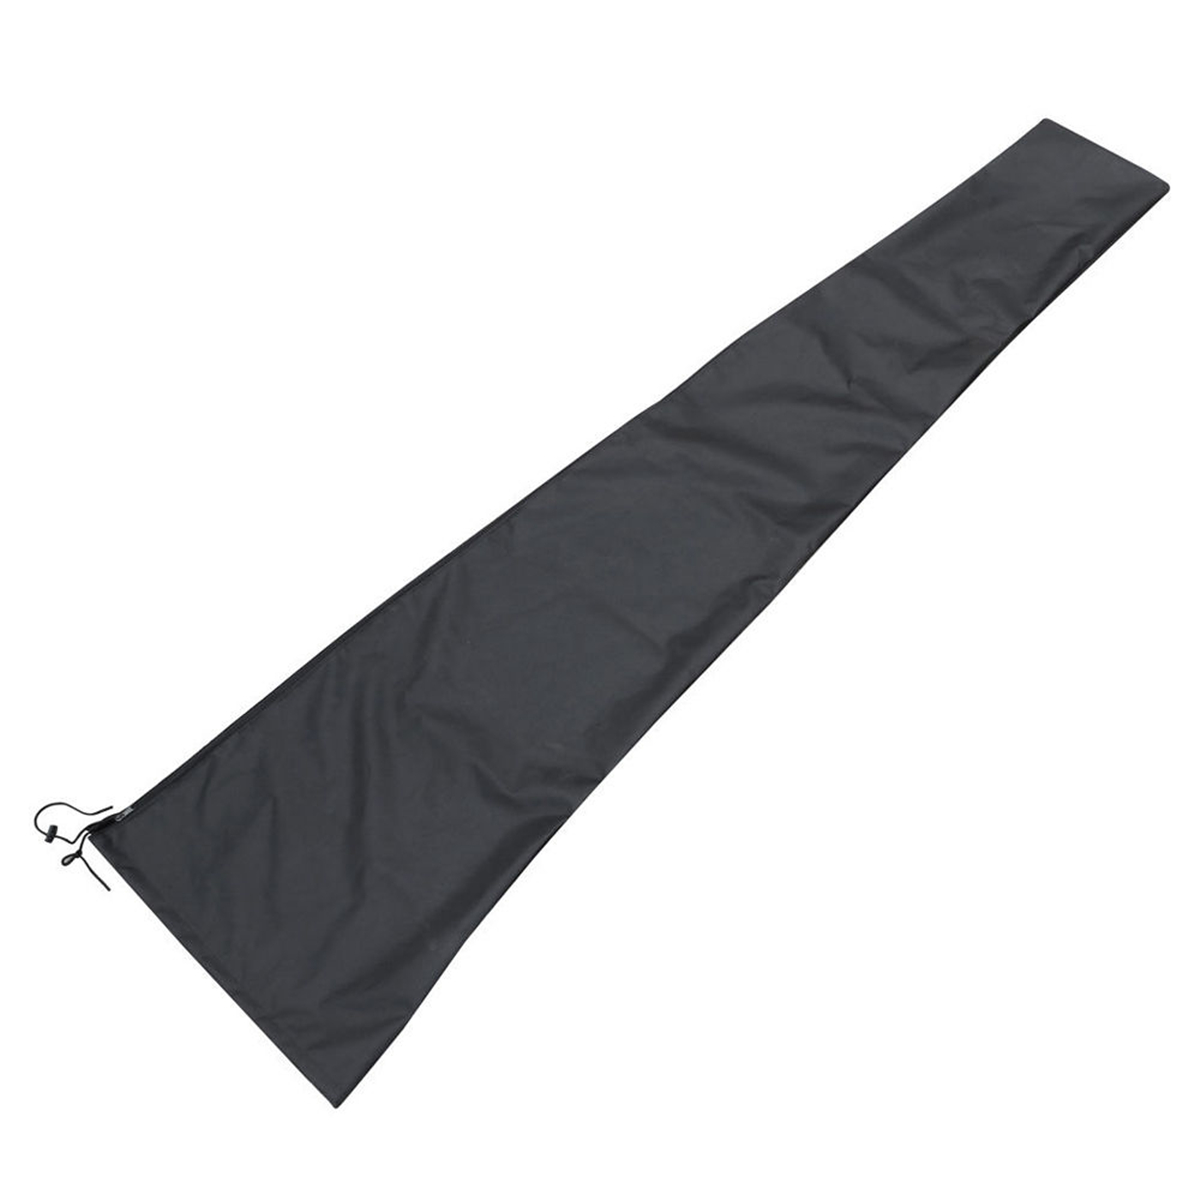 Patio Umbrella Covers With Zipper: Outdoor Waterproof Patio Umbrella Canopy Cover